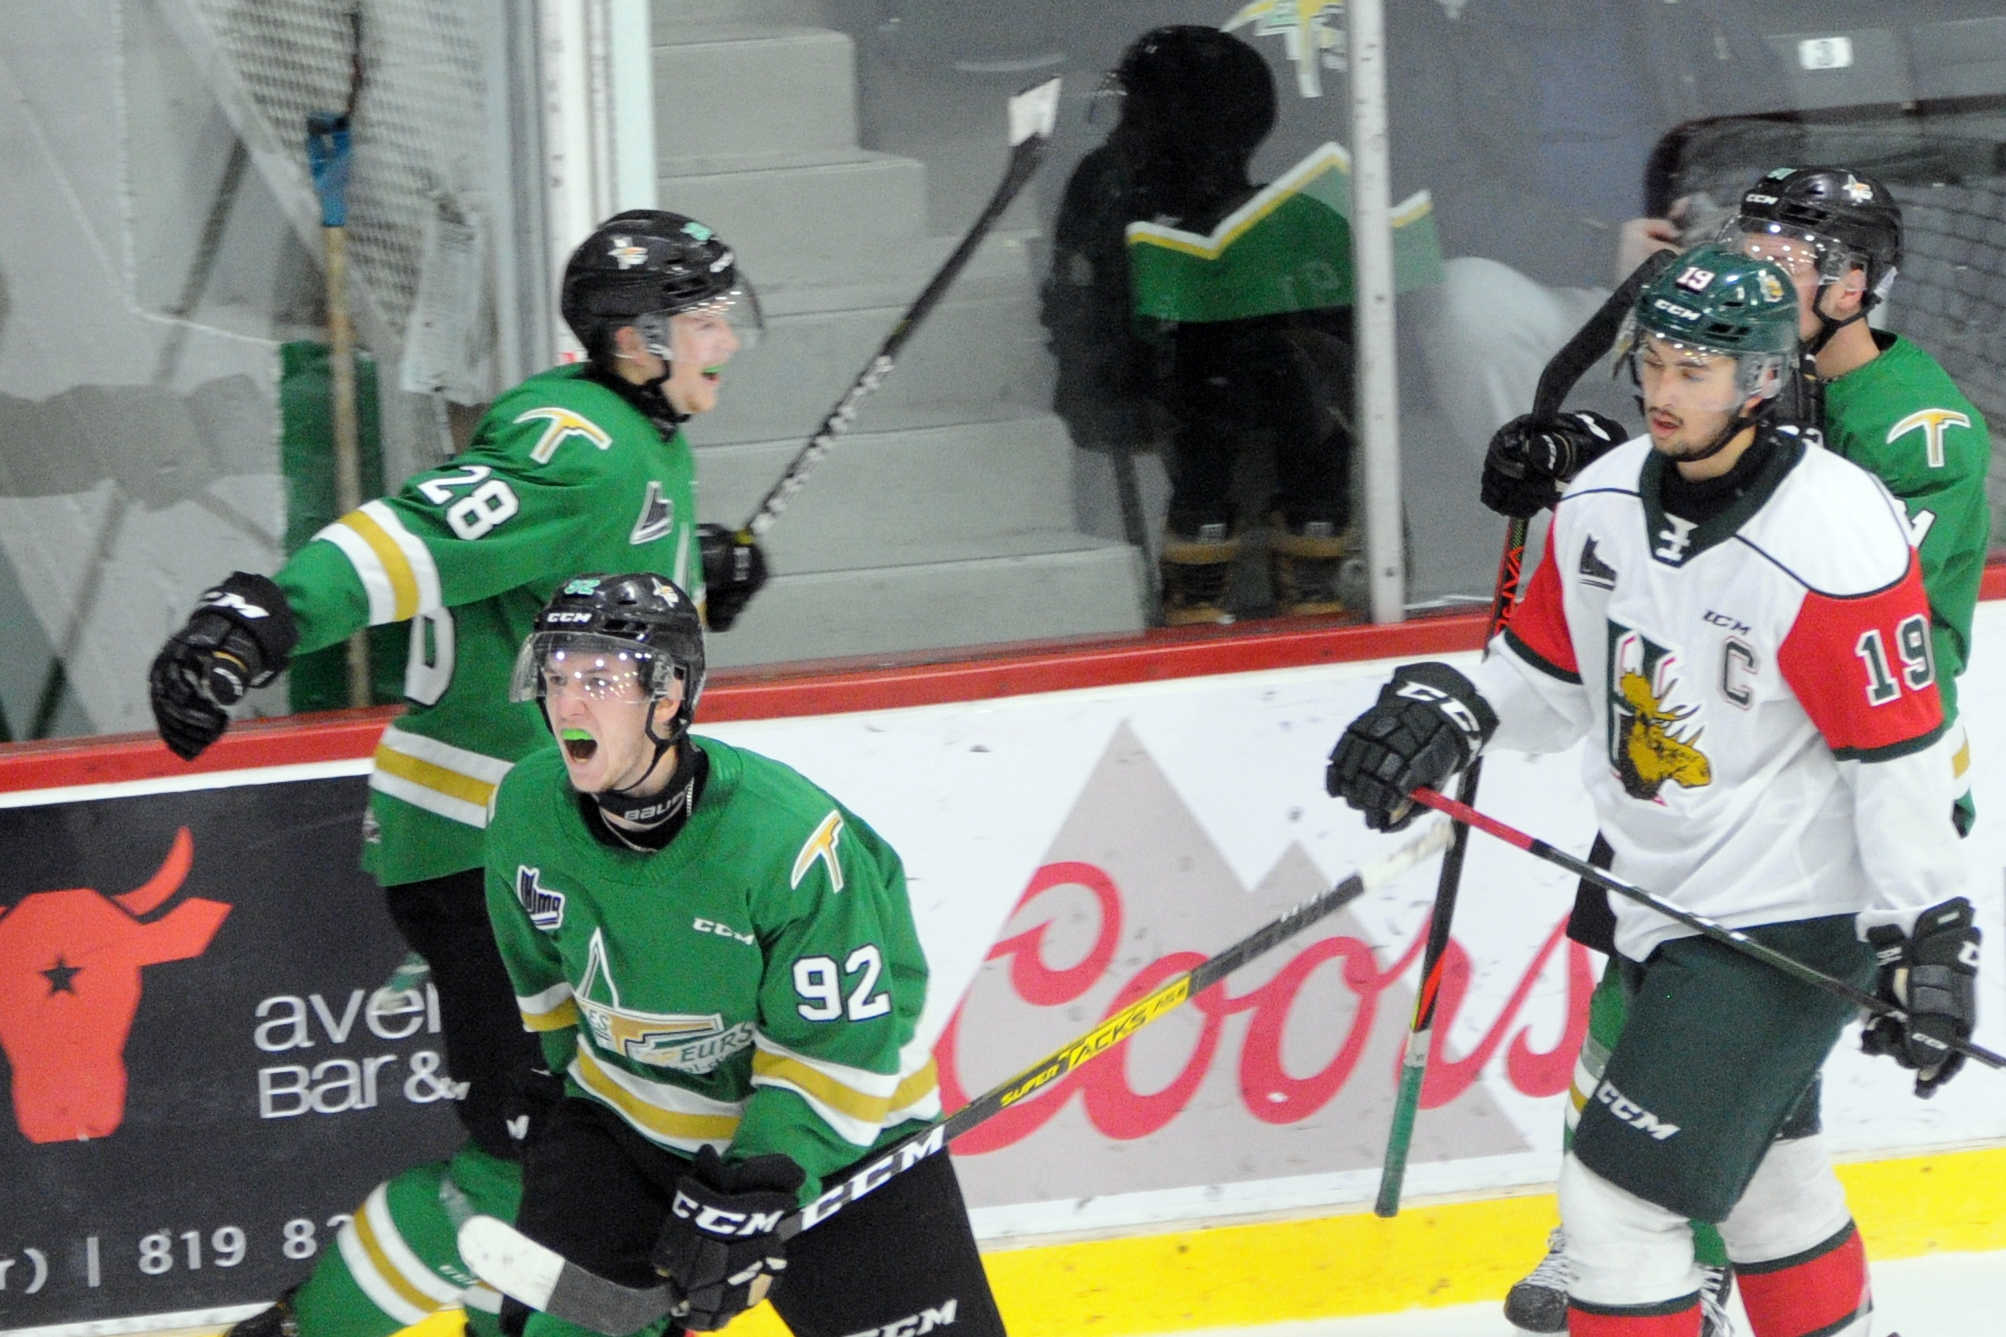 Mooseheads Halifax - Foreurs Val-d'Or